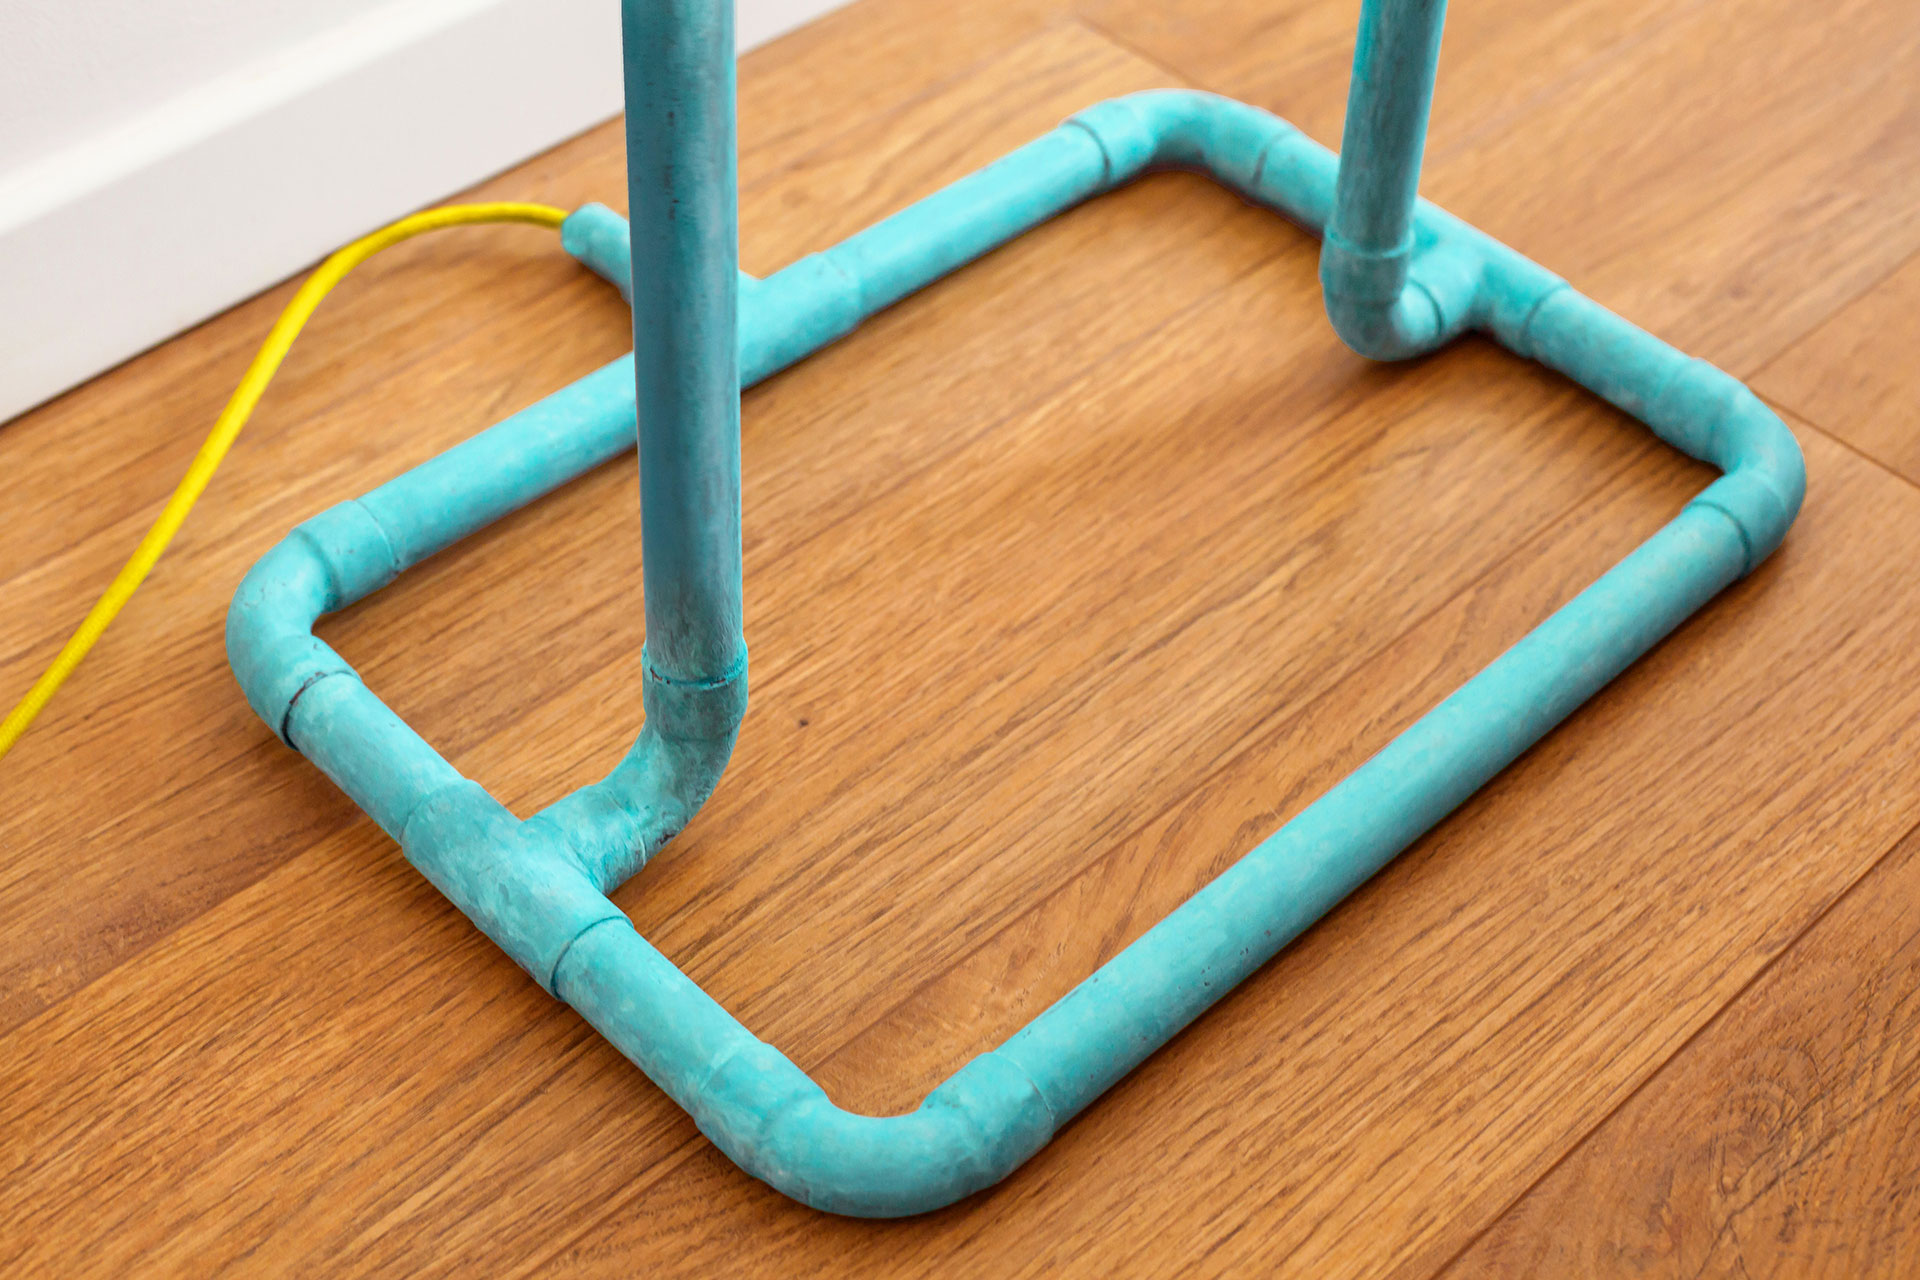 Colorful design floor lamp in turquoise patina with yellow braided cord